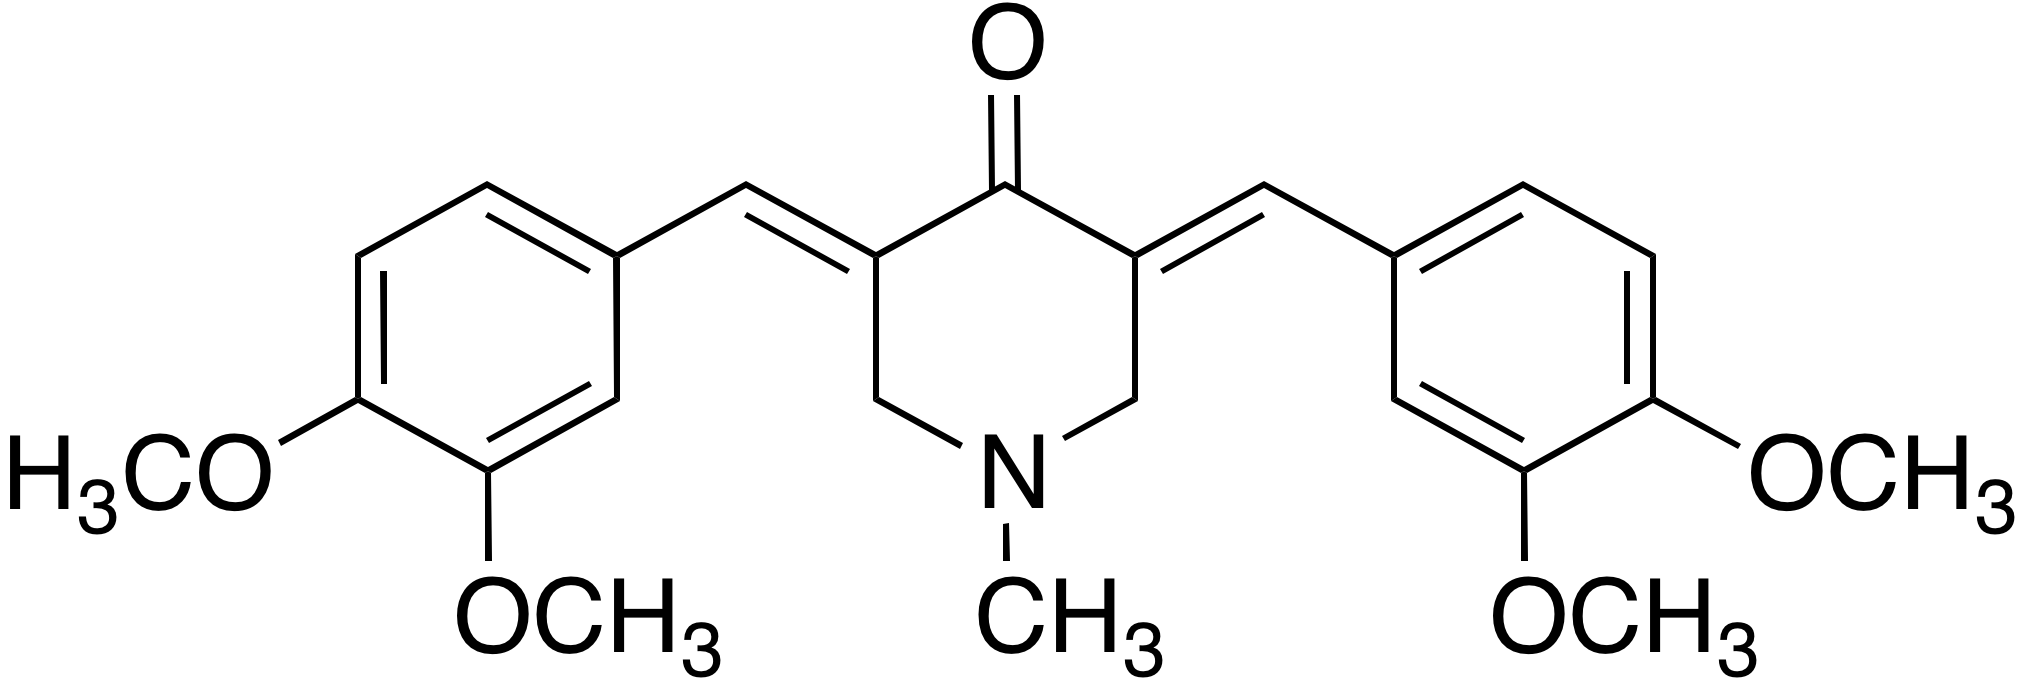 (3E,5E)-3,5-Bis(3,4-dimethoxybenzylidene)-1-methylpiperidin-4-one